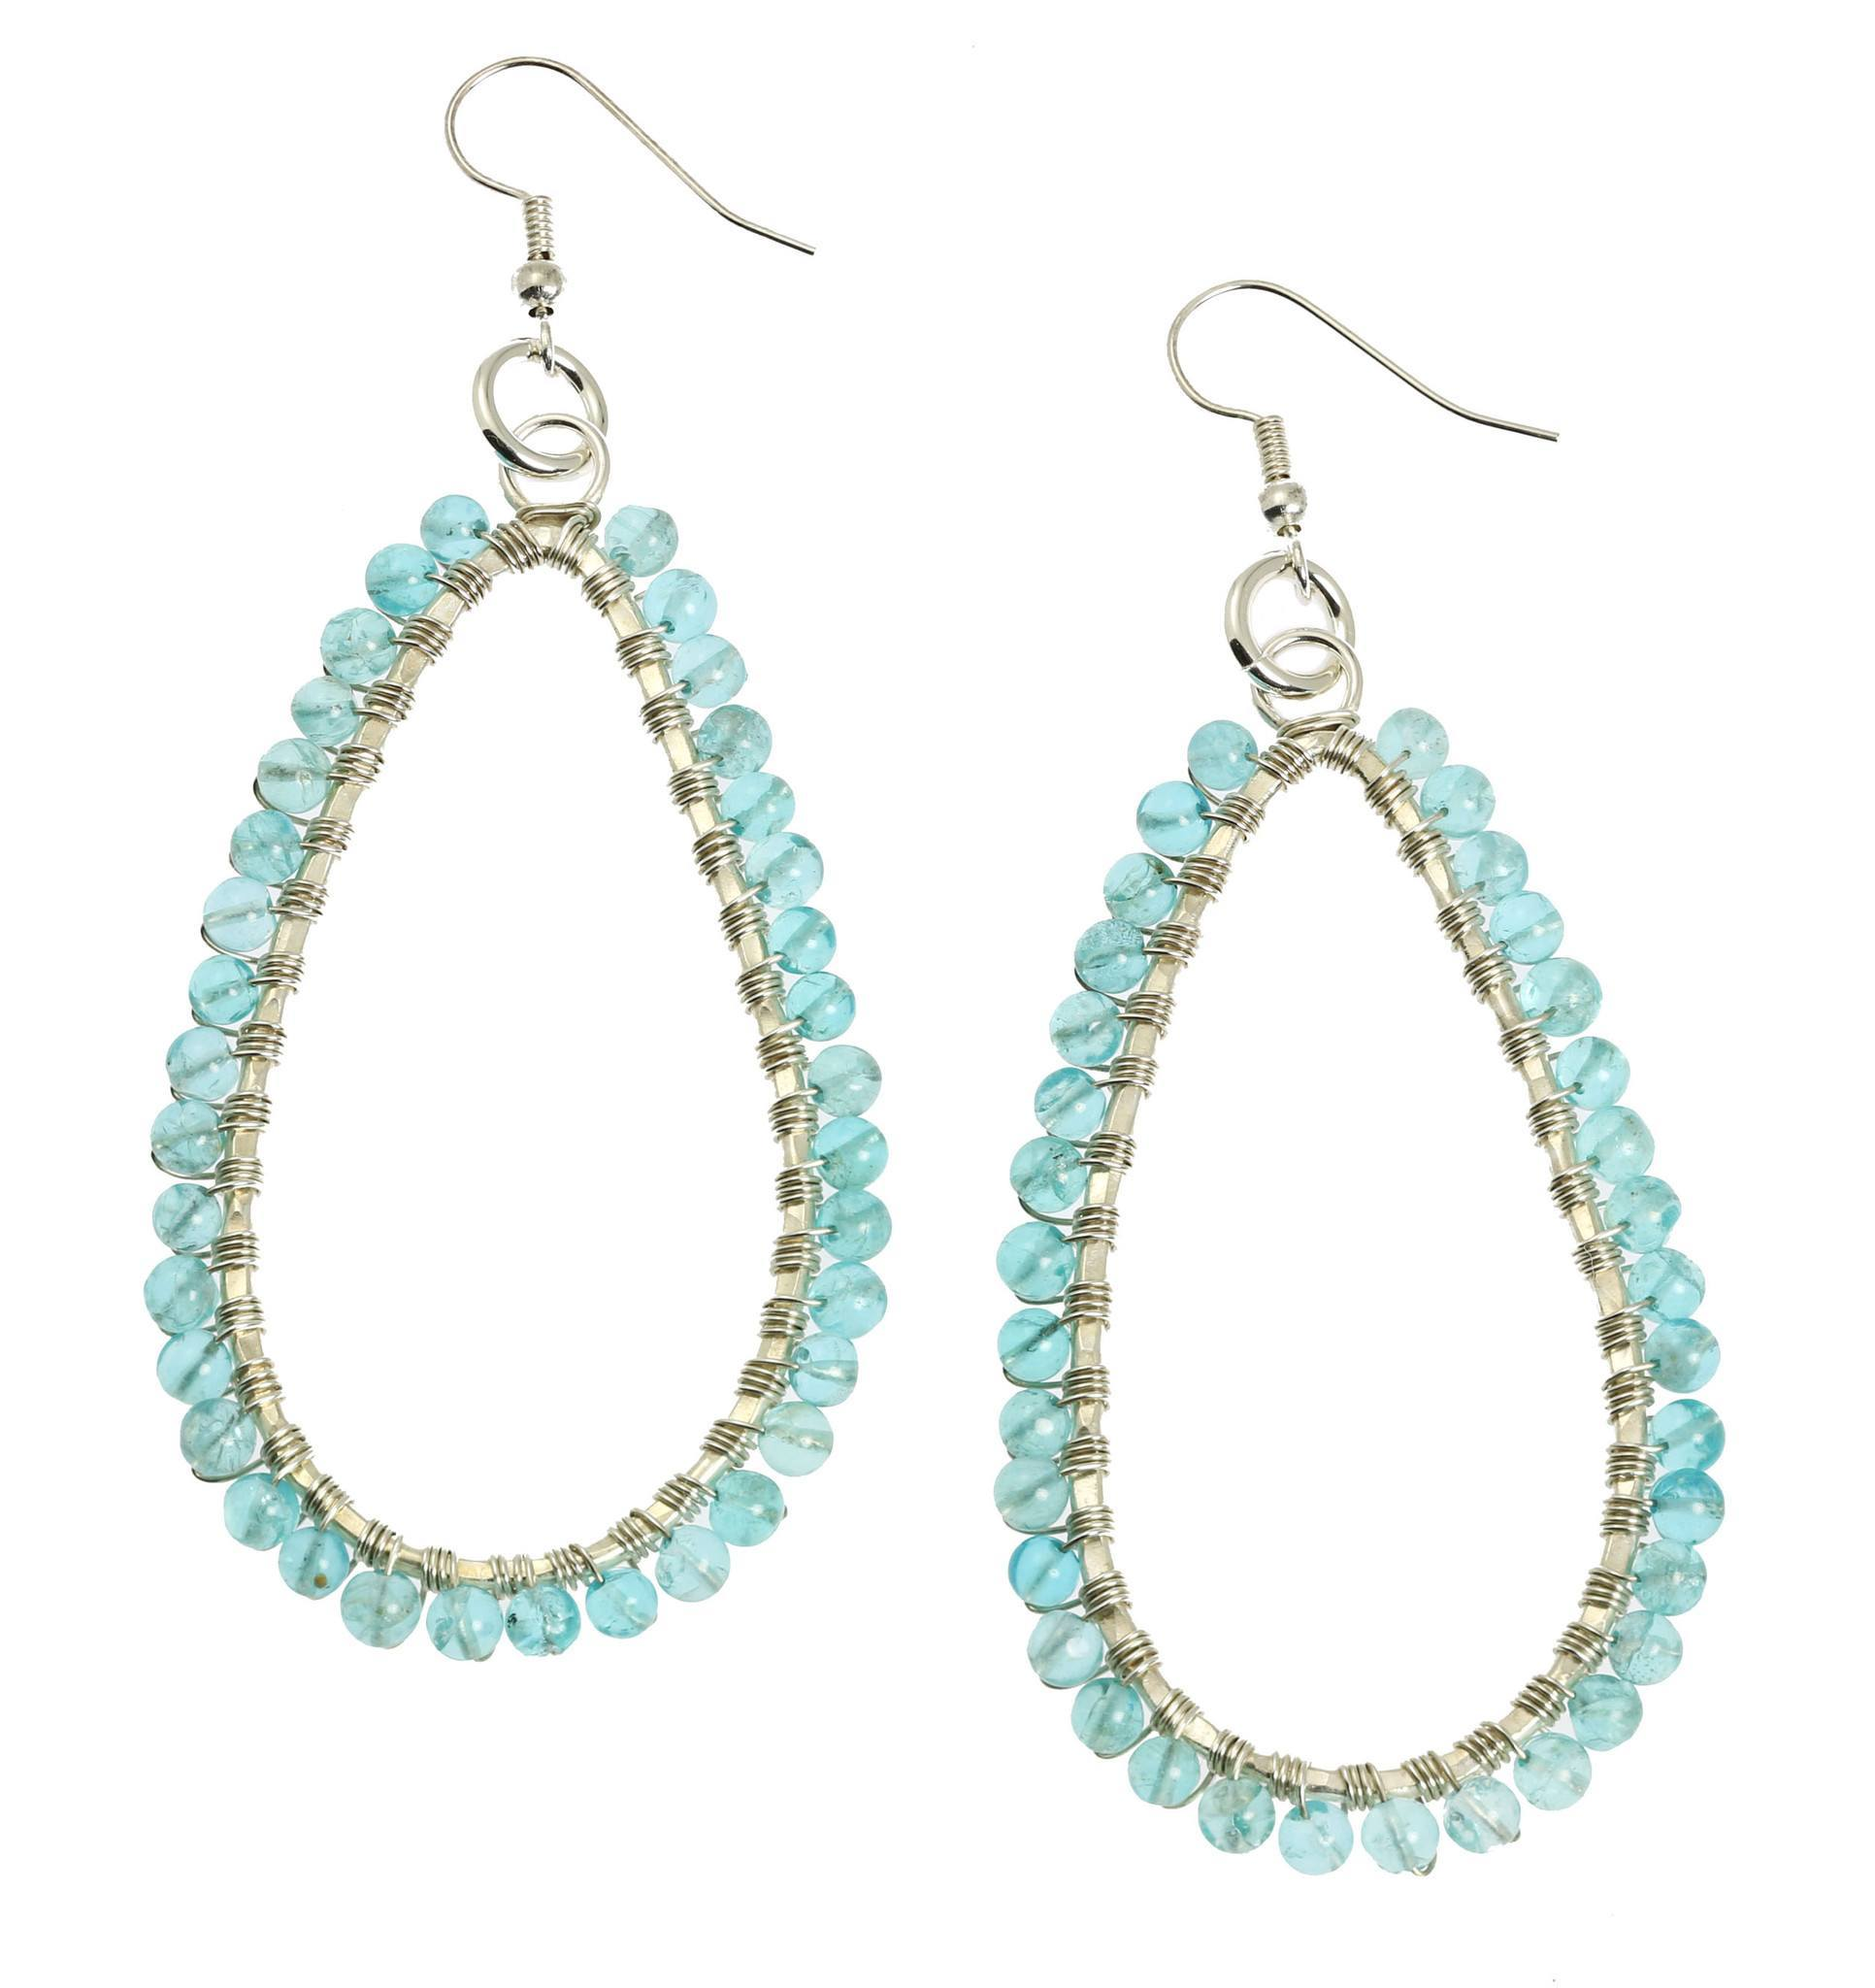 apatite scarborough drdesigns and fair aquamarine earrings shop product